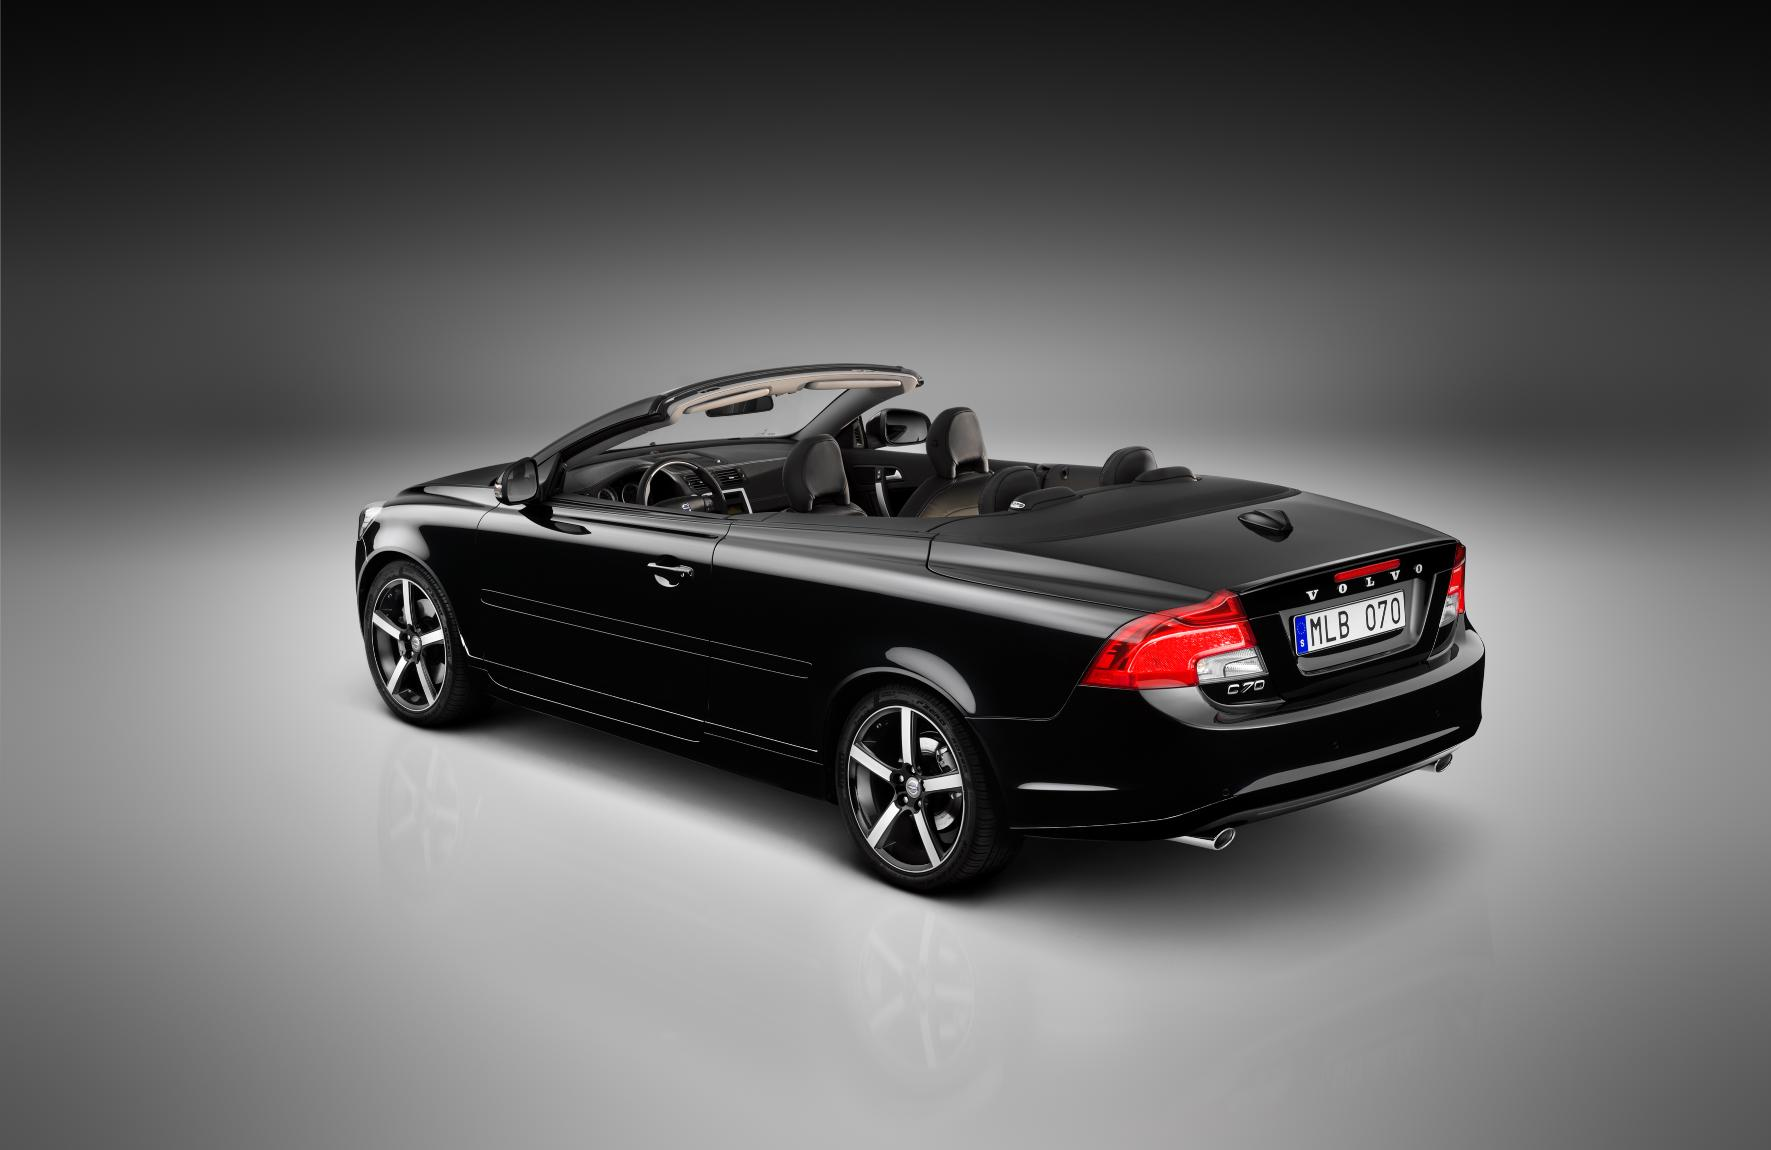 Volvo C70 Inscription 2